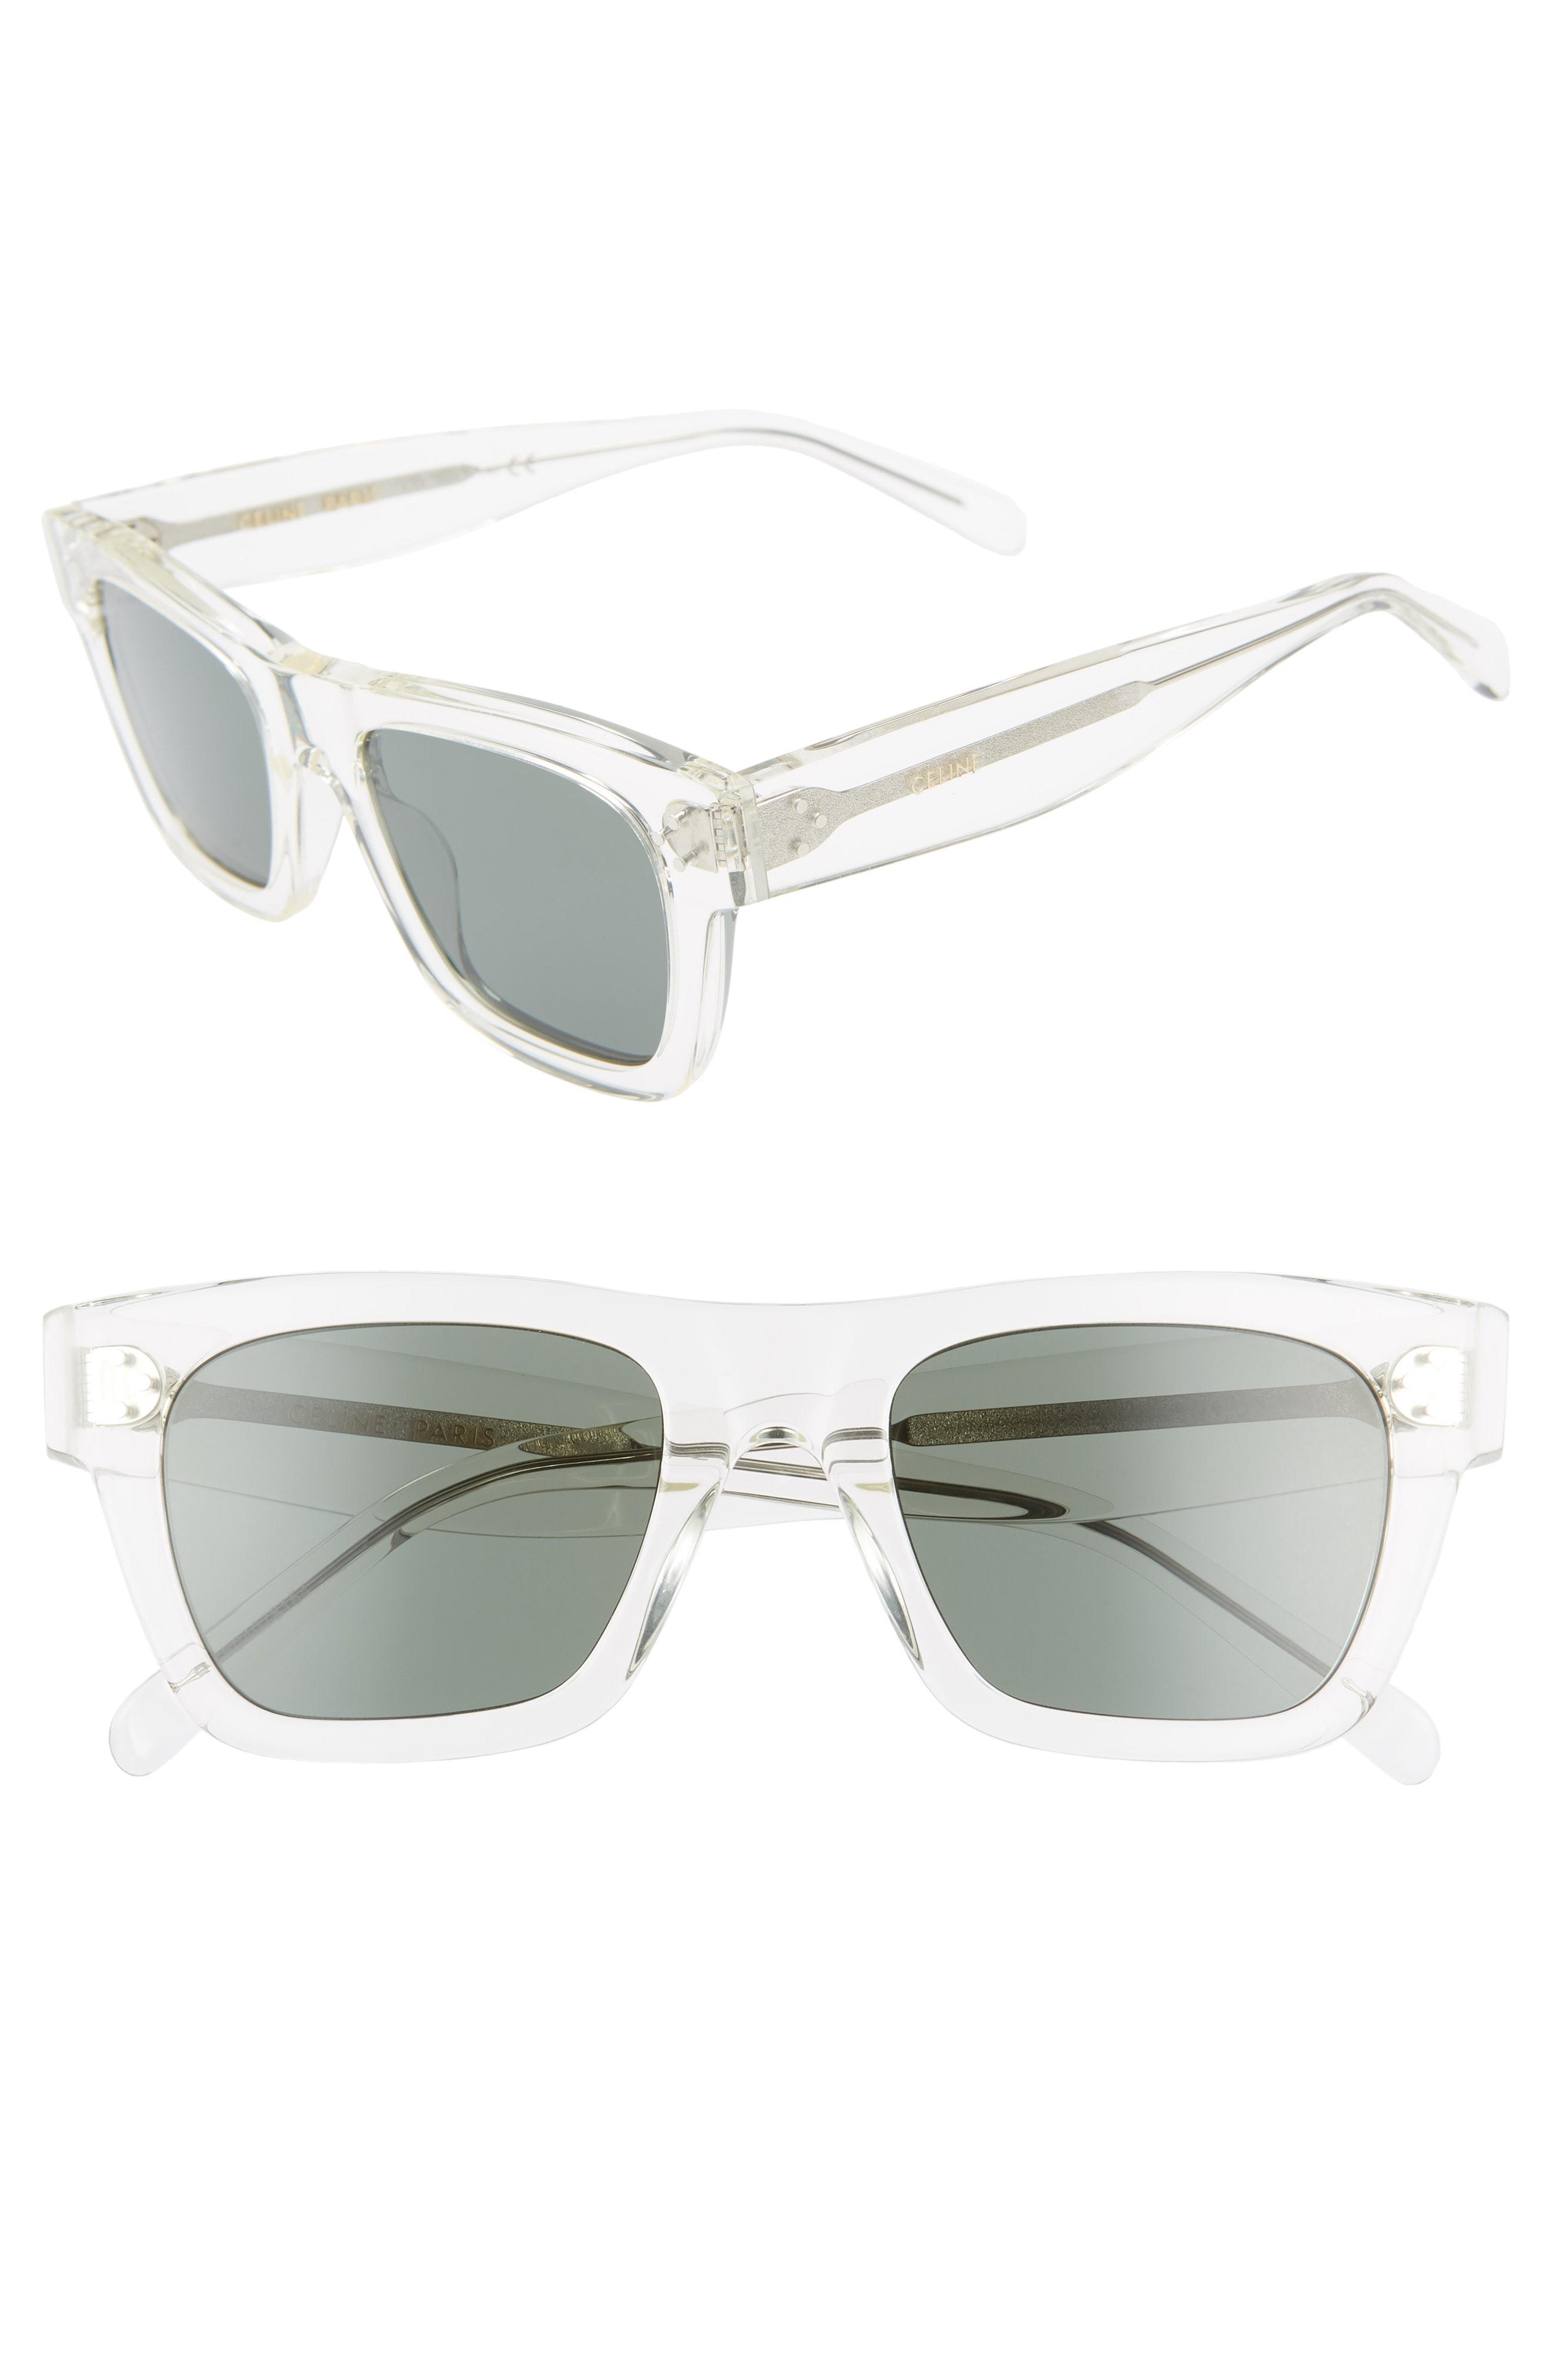 70ddcdfc075aa Céline 51mm Square Sunglasses - Crystal  Green in Green - Lyst